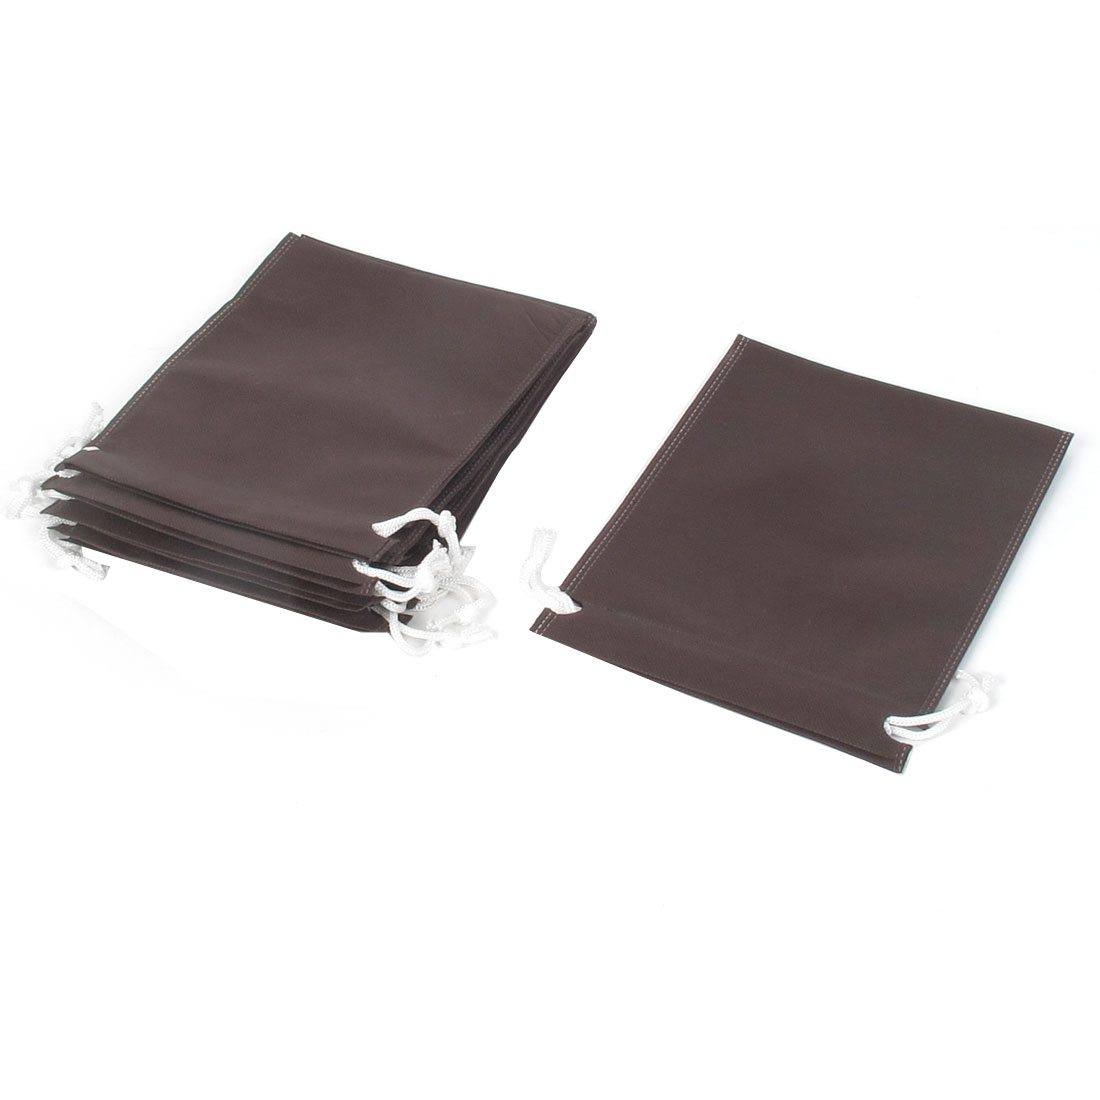 Traveling Clothes Dust Cover Storage Drawstring Bags 17x23cm Coffee Color 10pcs